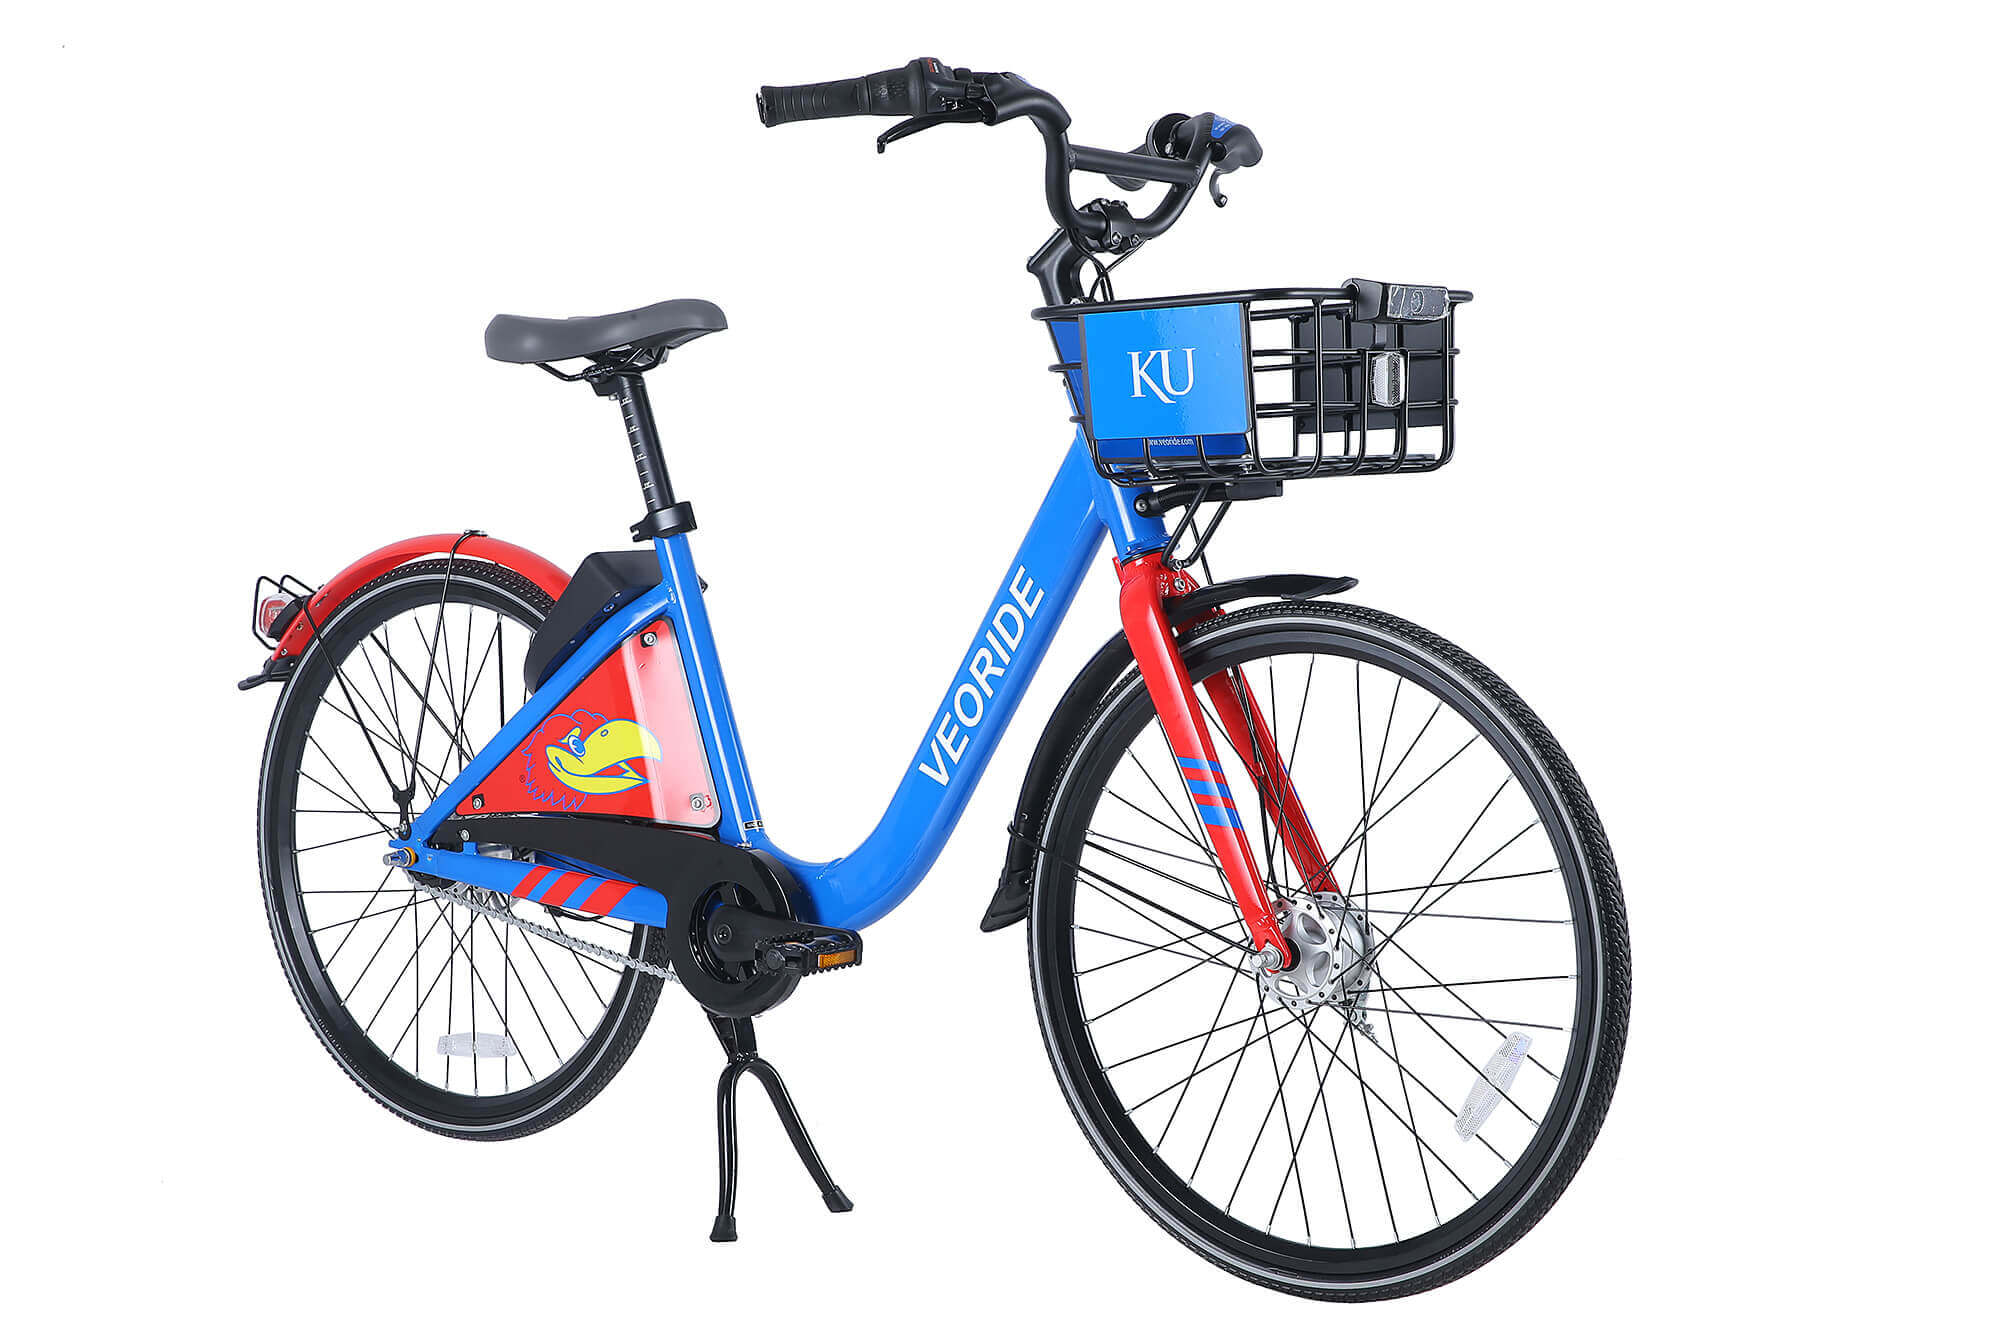 866fc3b8c Startup that launched bicycle sharing program at Purdue in 2017 is ...